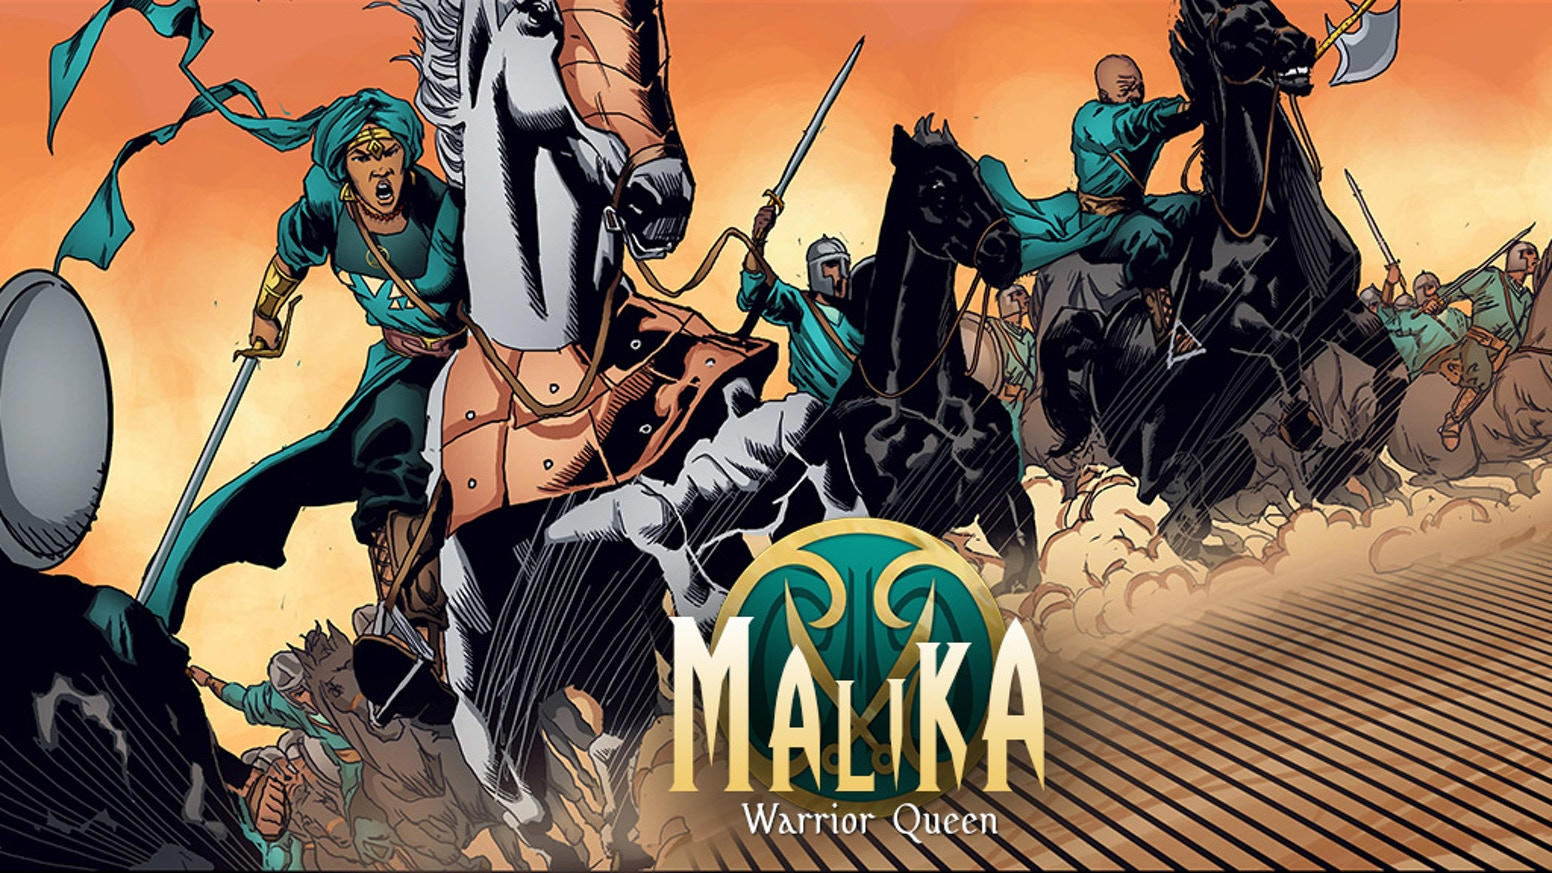 Set in 15th century West Africa, follow the exploits of queen Malika, who struggles to keep the peace in her ever-expanding kingdom.